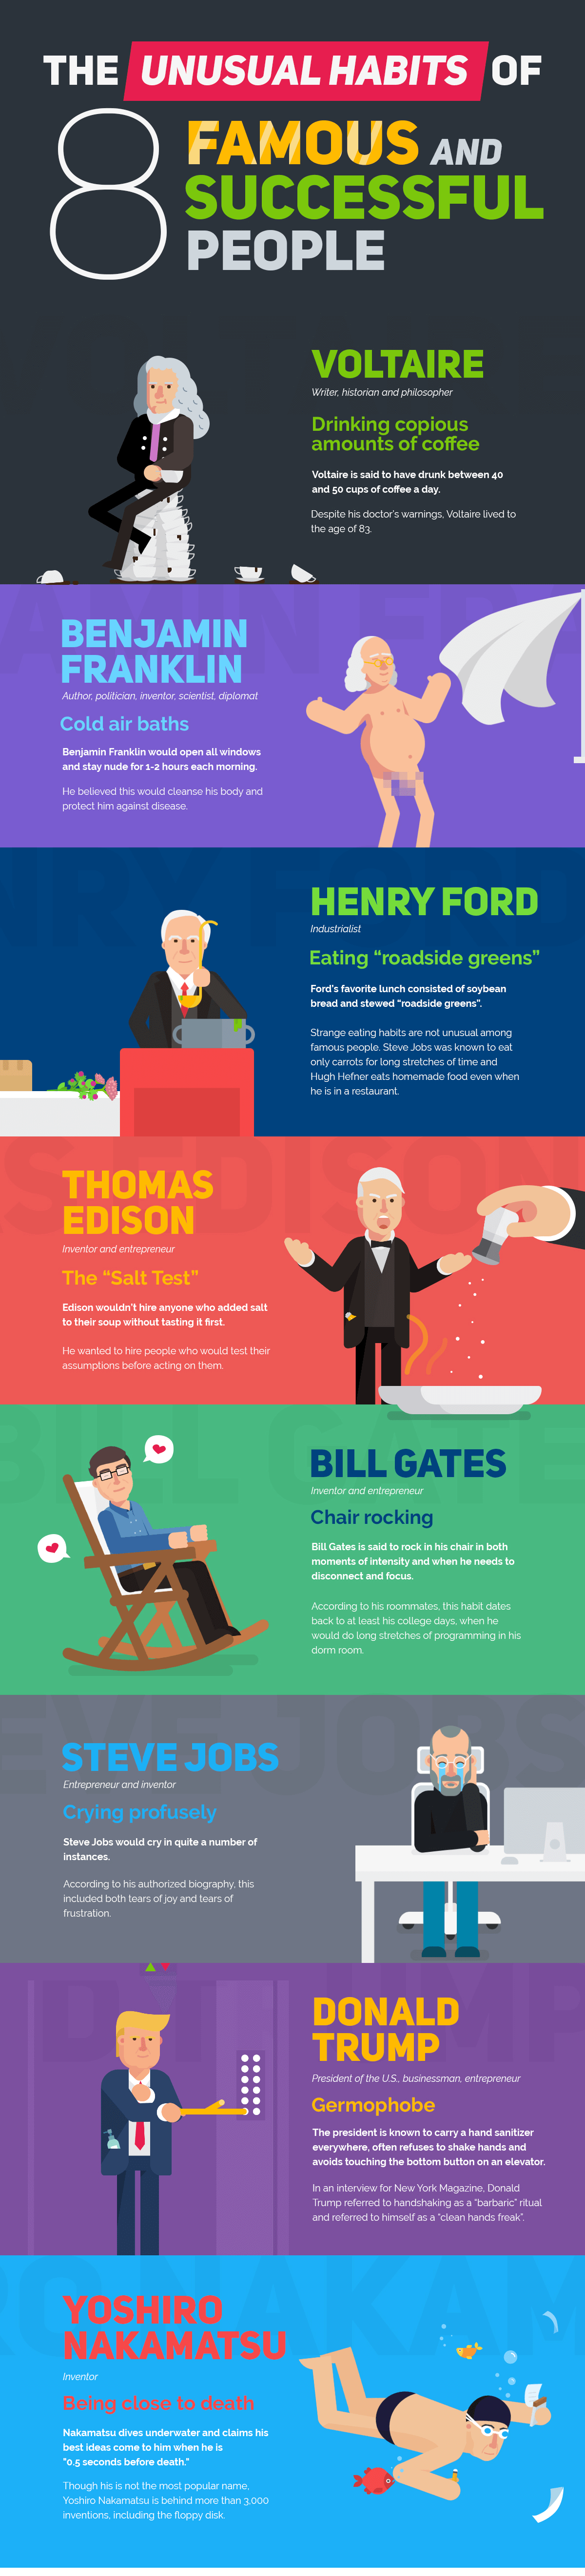 Bizarre Habits From 8 Famous & Successful People Infographic